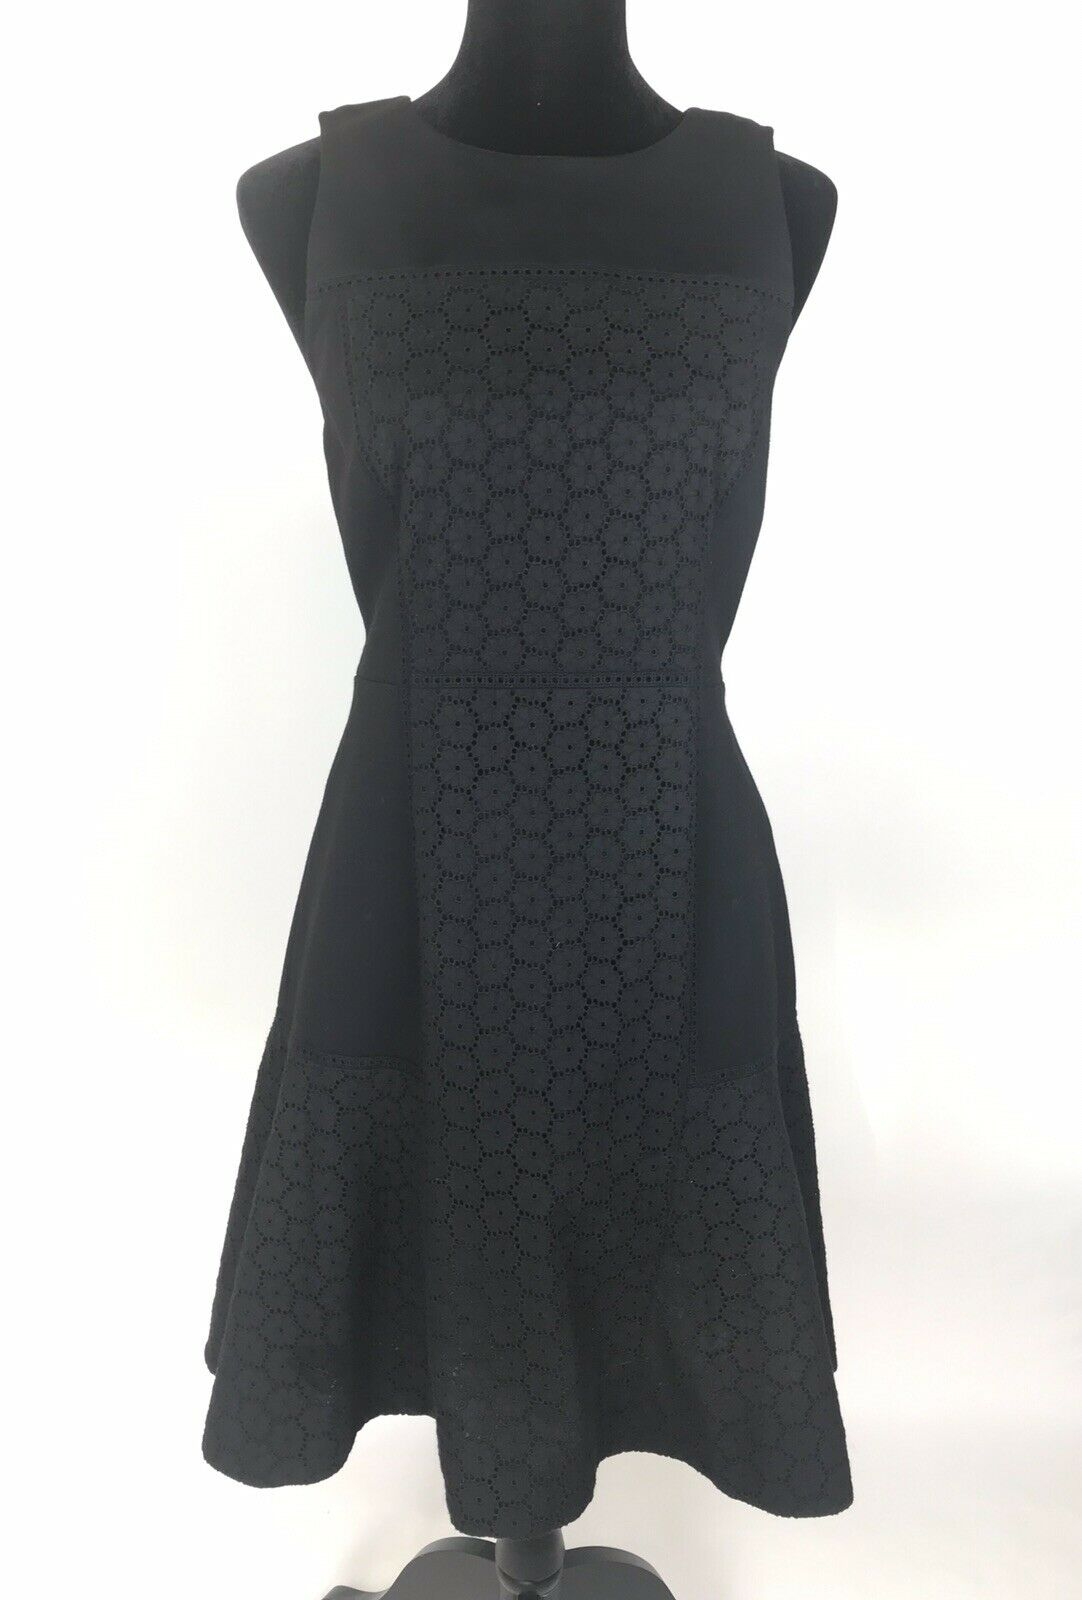 J.Crew Collection Paneled Eyelet Dress Fit & Flare schwarz Größe 6 Knee Length